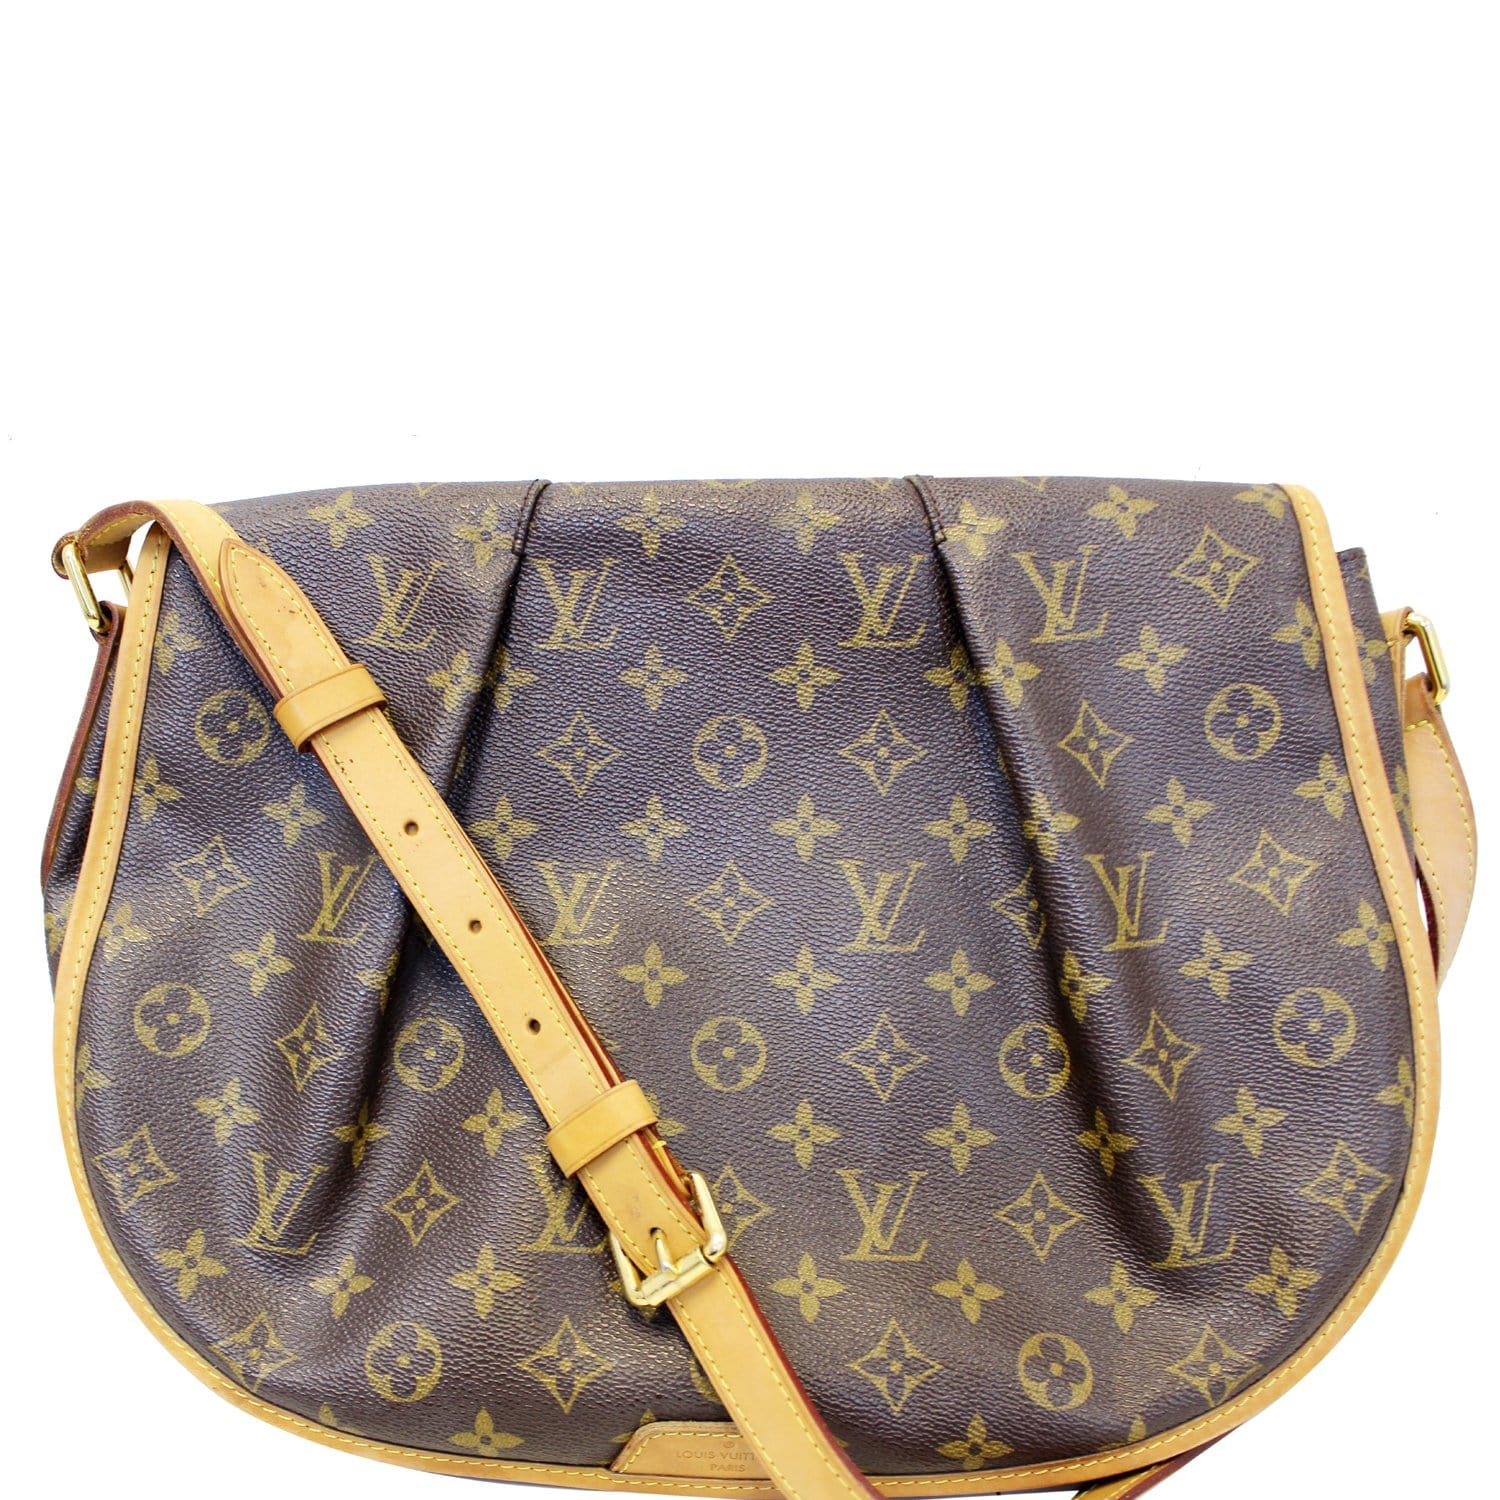 9c38d8cff327 LOUIS VUITTON Menilmontant GM Monogram Canvas Shoulder Crossbody Bag-US